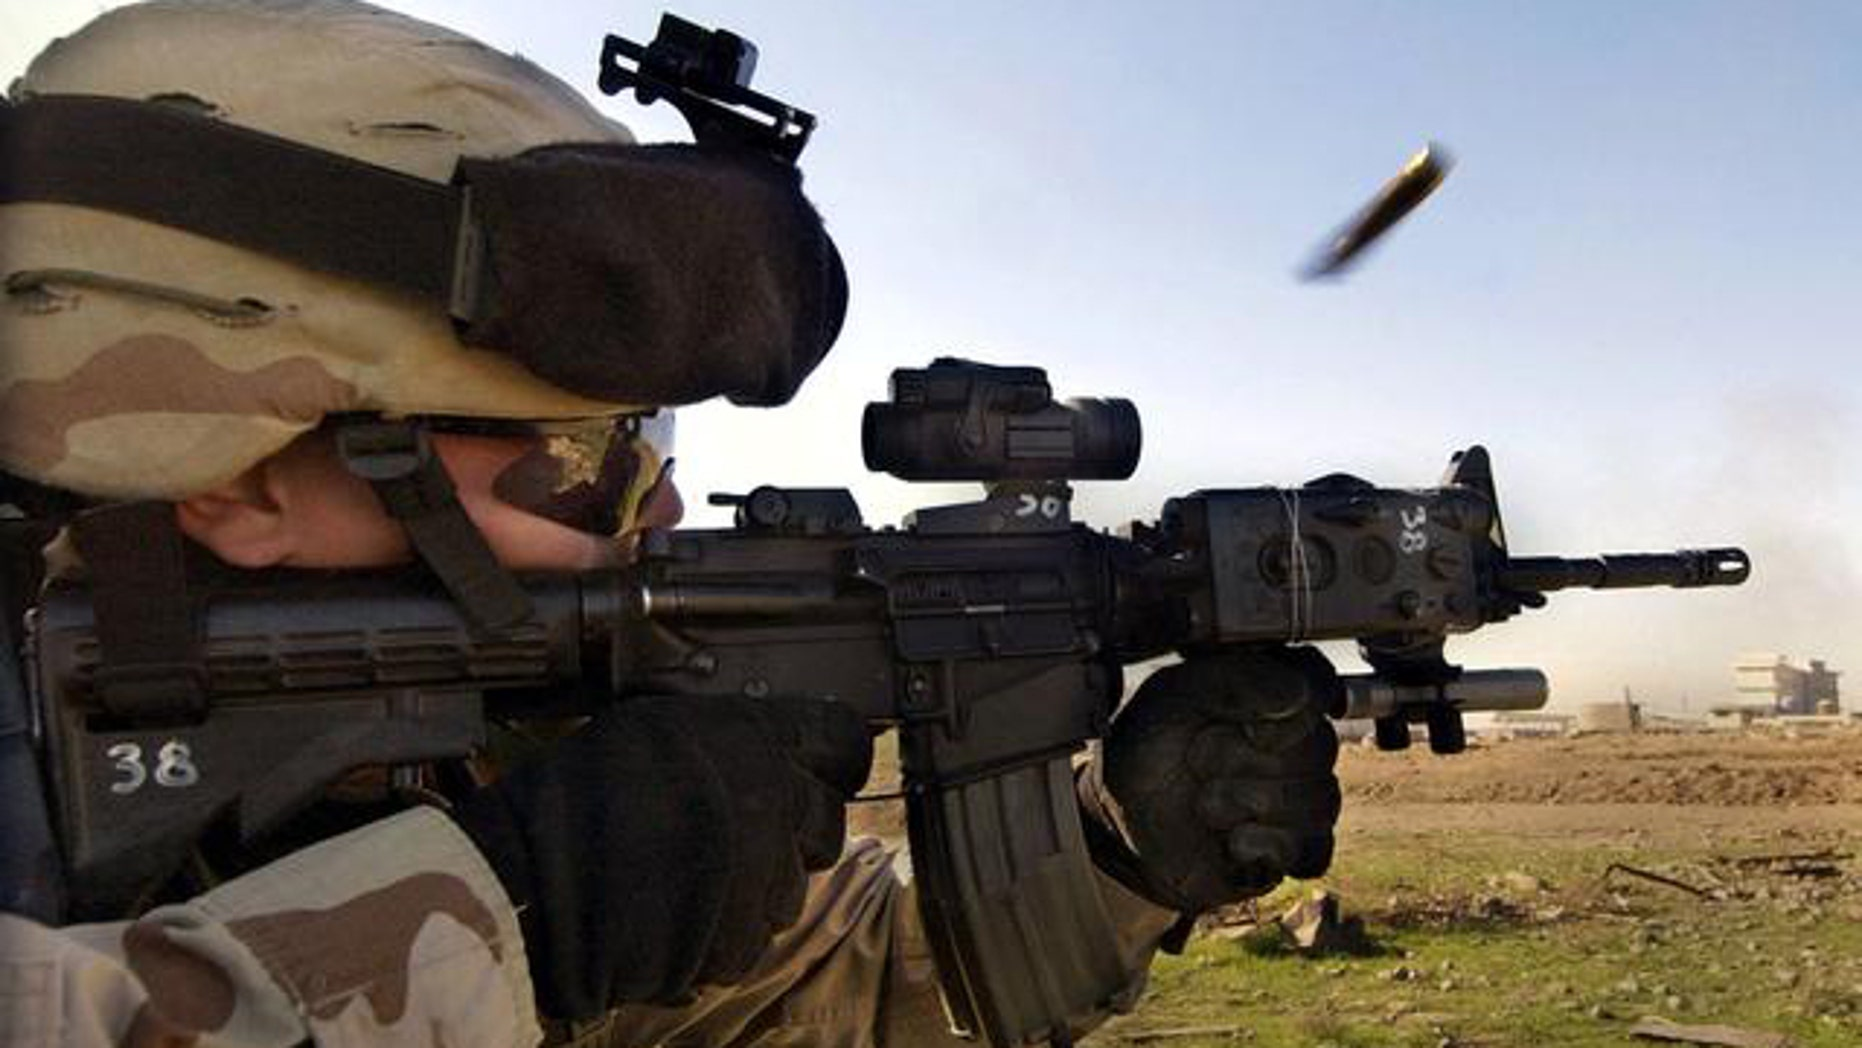 In this December 2004 file photo, a U.S. Army soldier fires a rifle during a fight with insurgents in Mosul, Iraq.